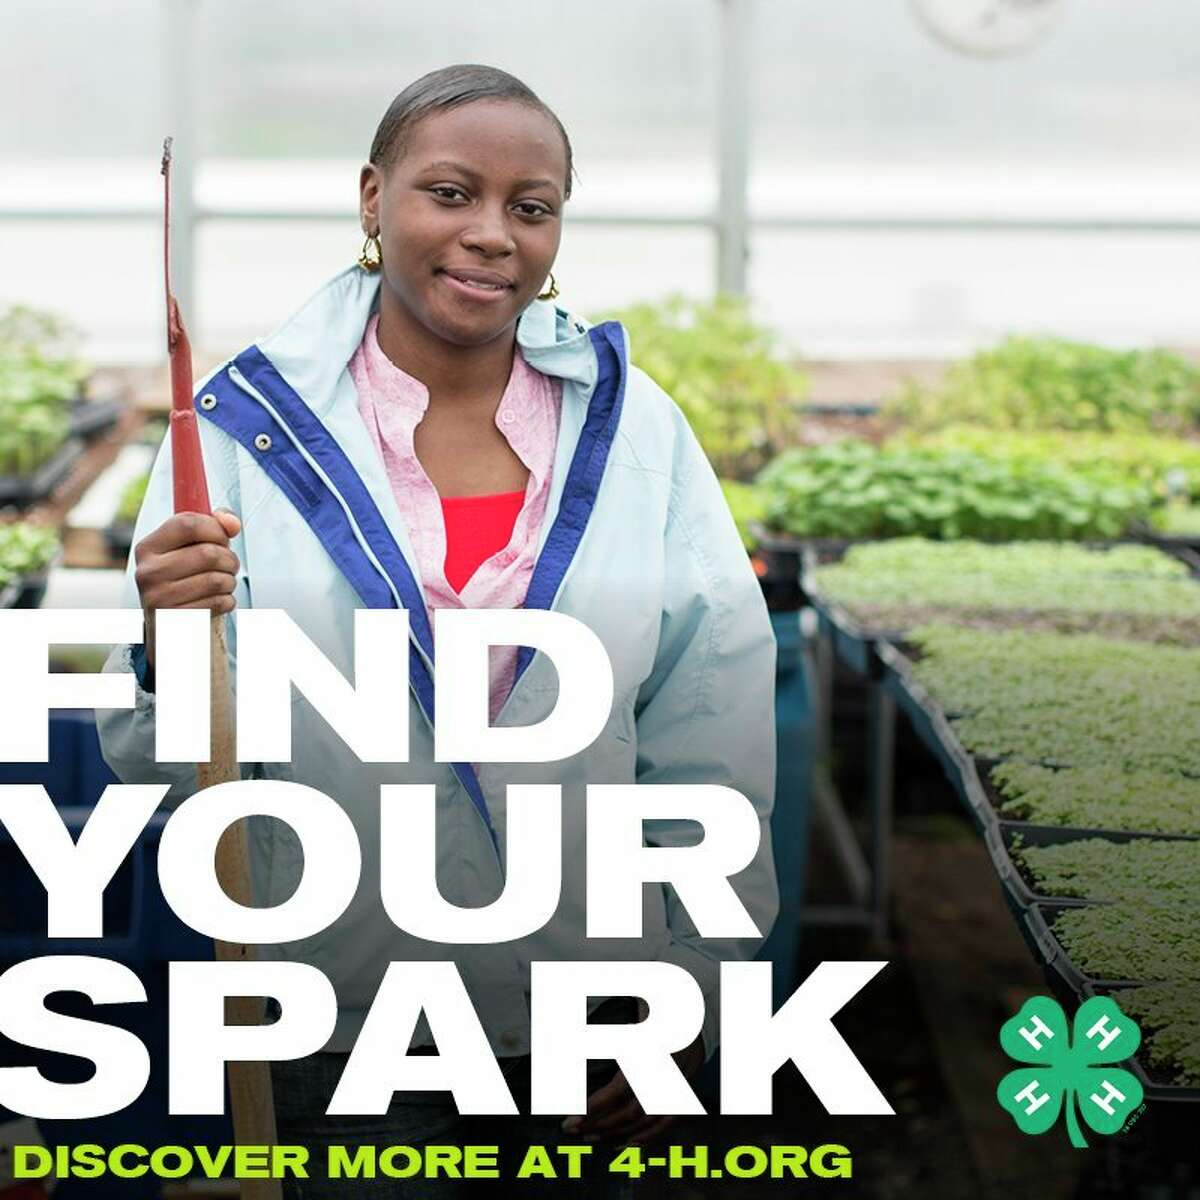 For more information on the Lake County 4-H program, contact Laurie Platte Breza, 4-H Coordinator, at platteb1@msu.edu.